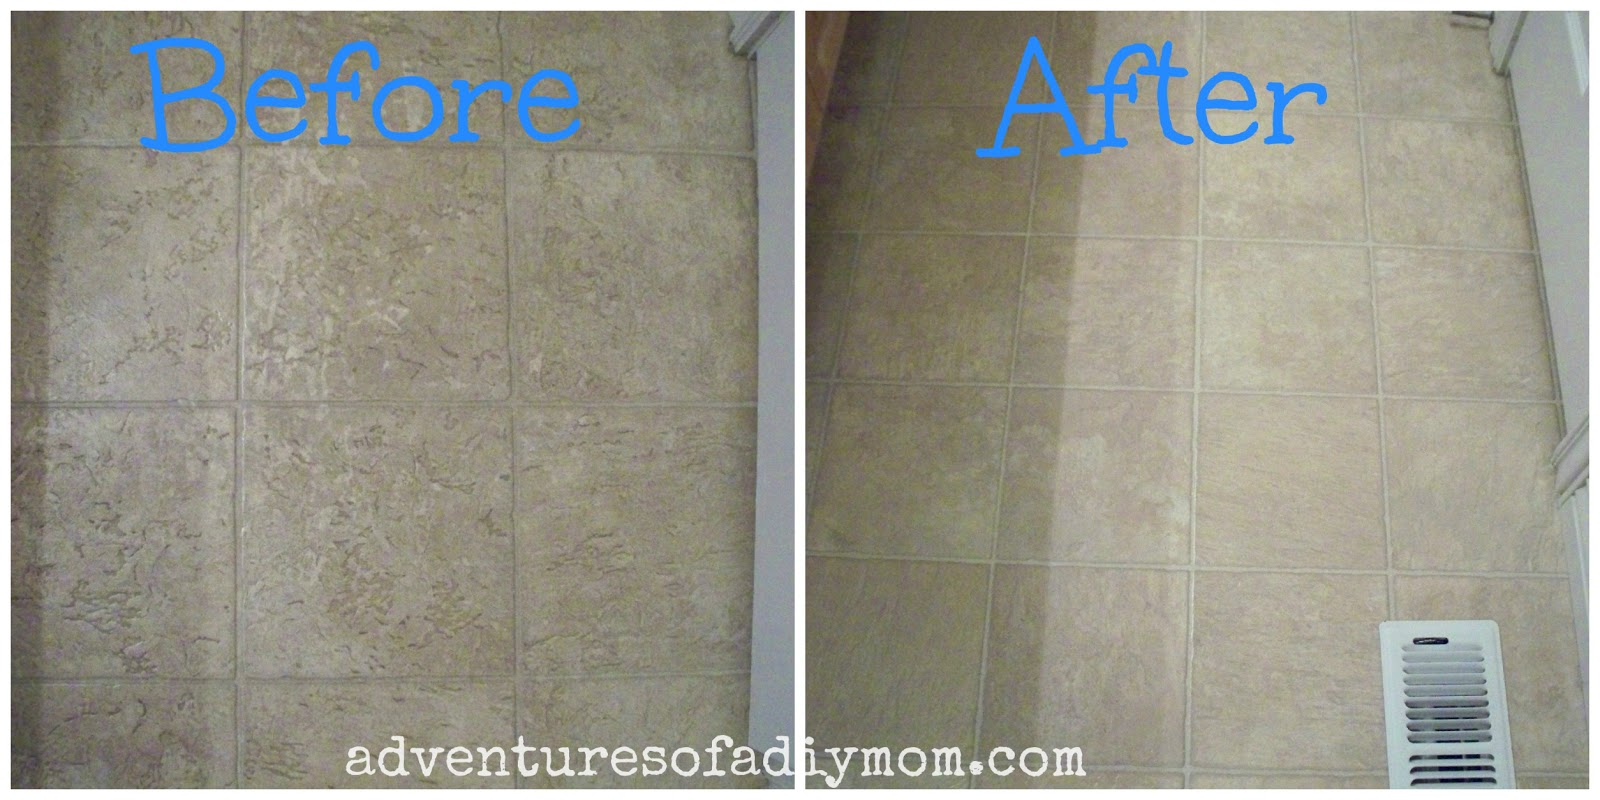 How To Clean Bathroom Floor | How To Remove Hairspray Residue From Floor Adventures Of A Diy Mom